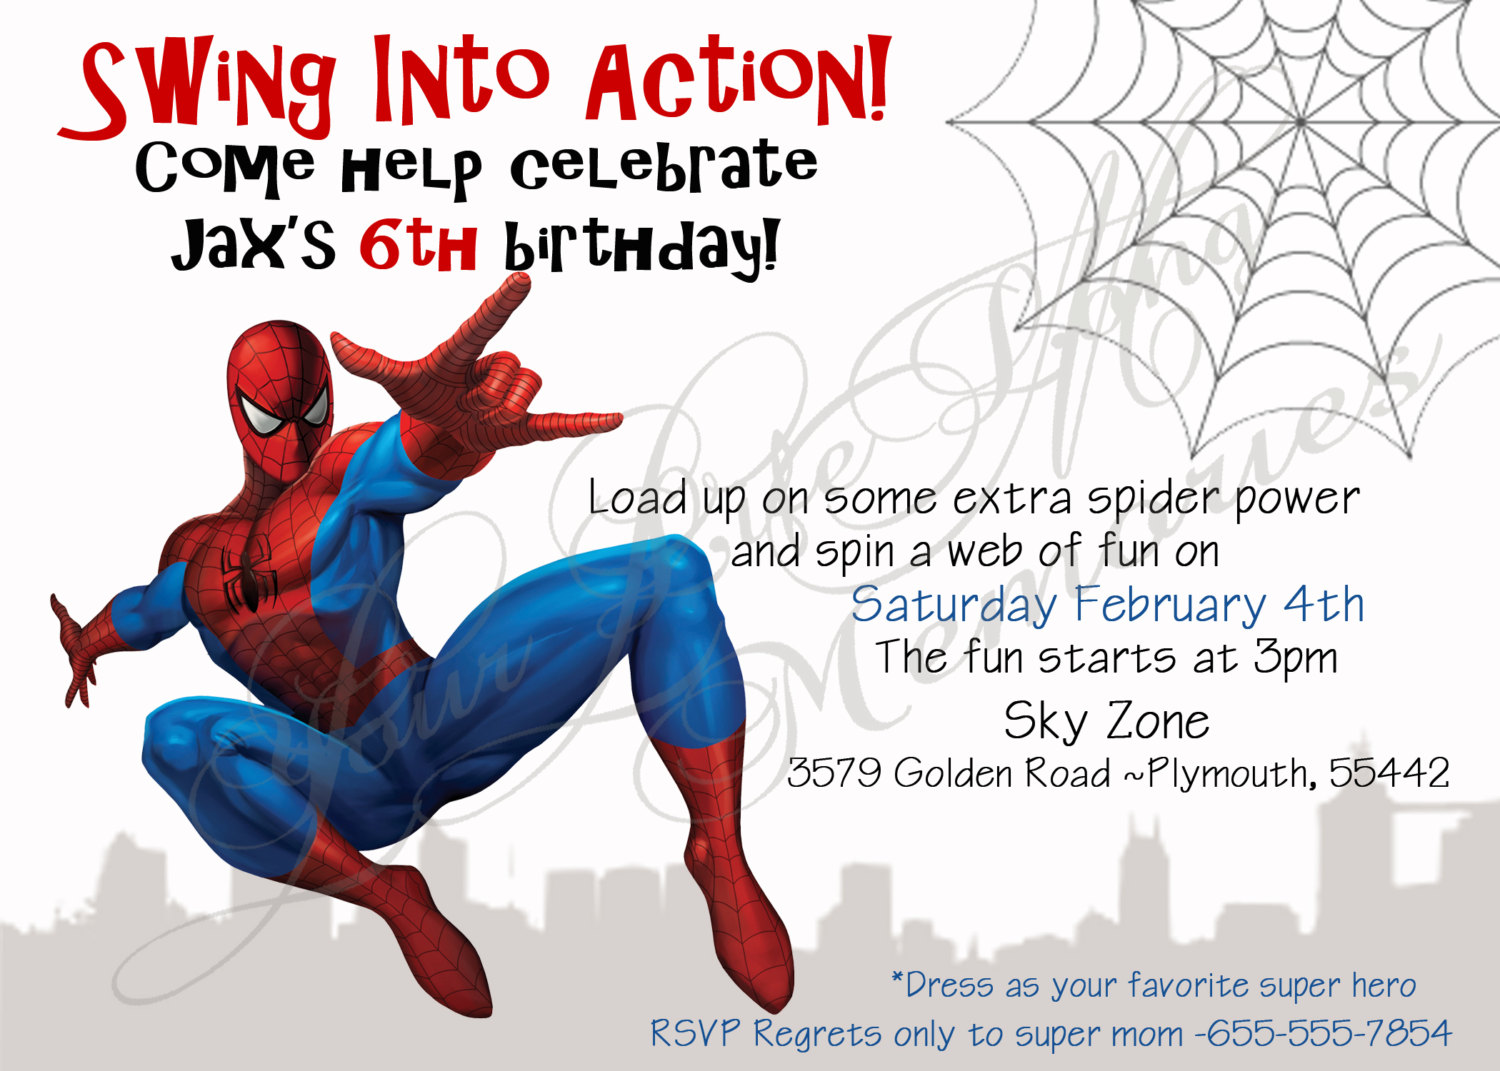 free printable invitation cards for birthday party for kids ; 81e7a88290372d1dcaa5c07dafdc2dee